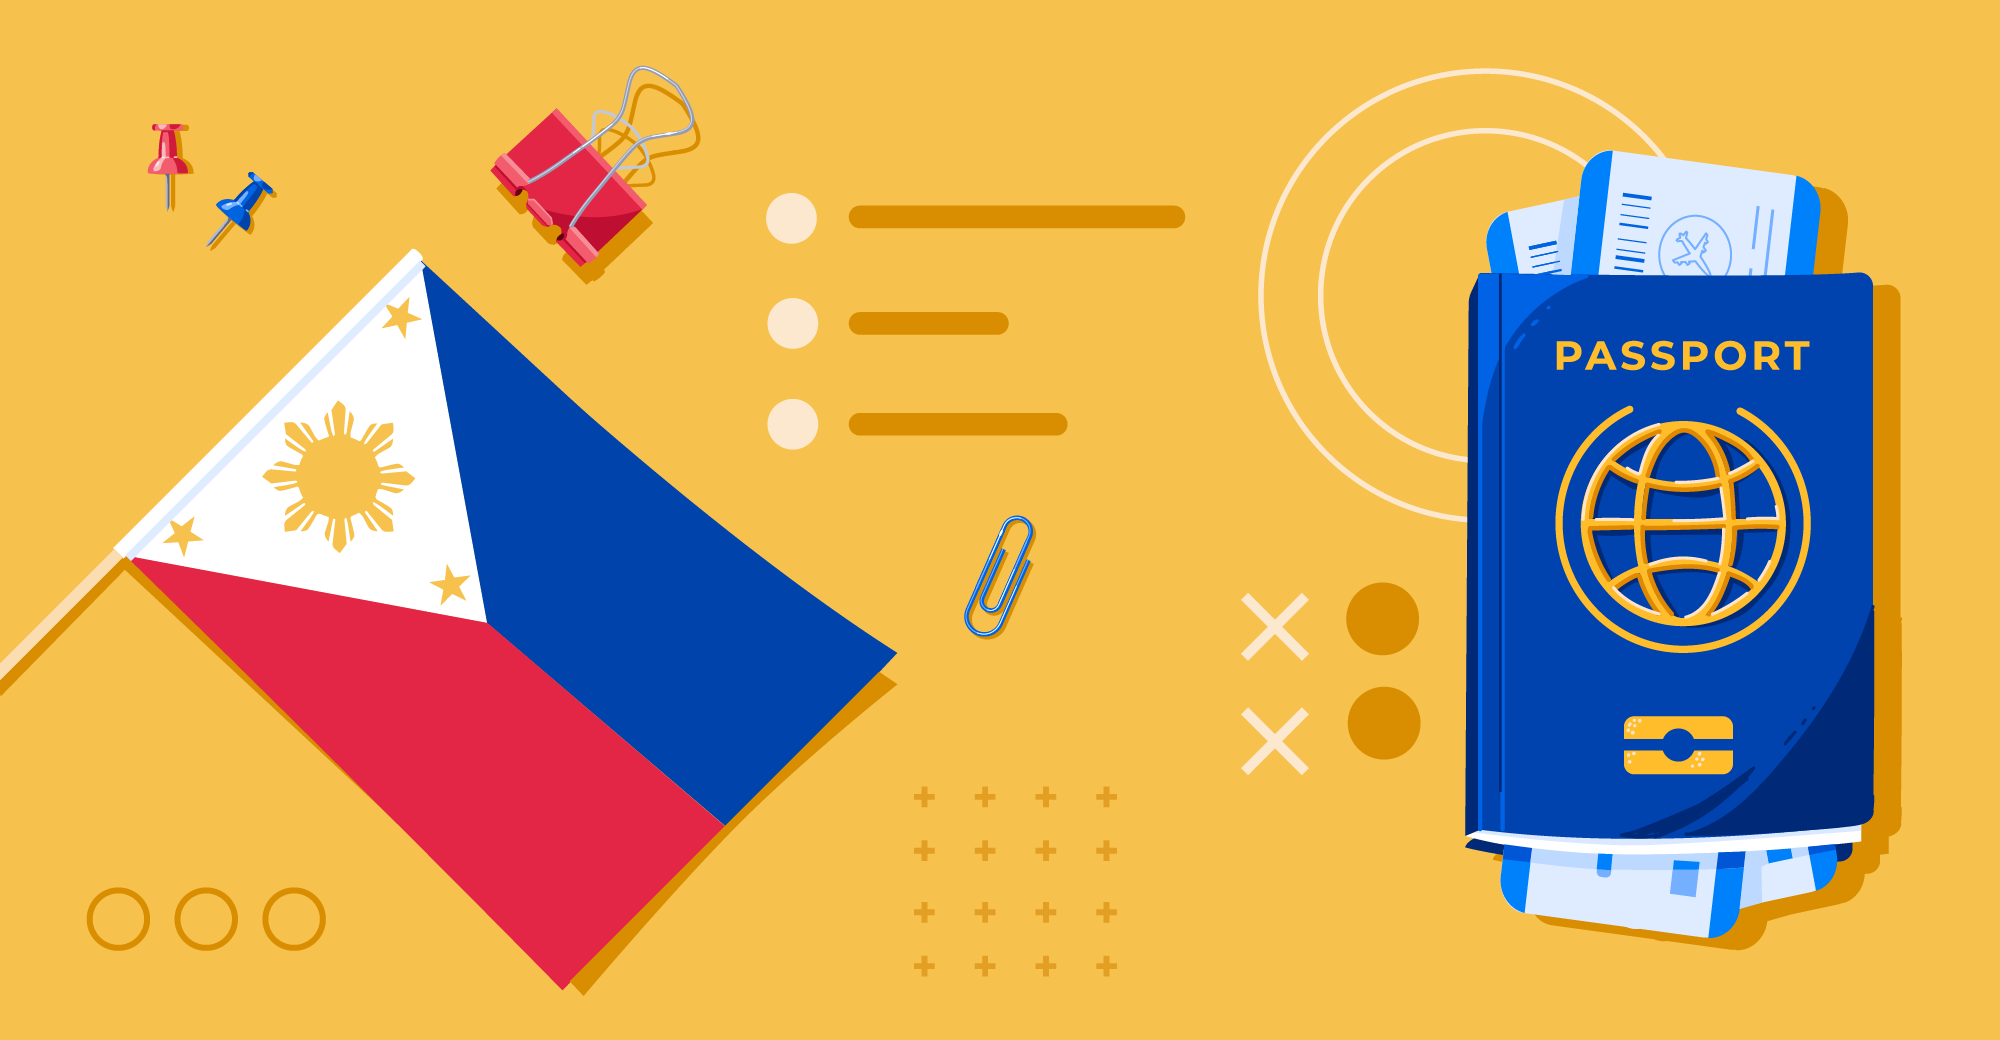 Illustration showing Philippines flag and travel document